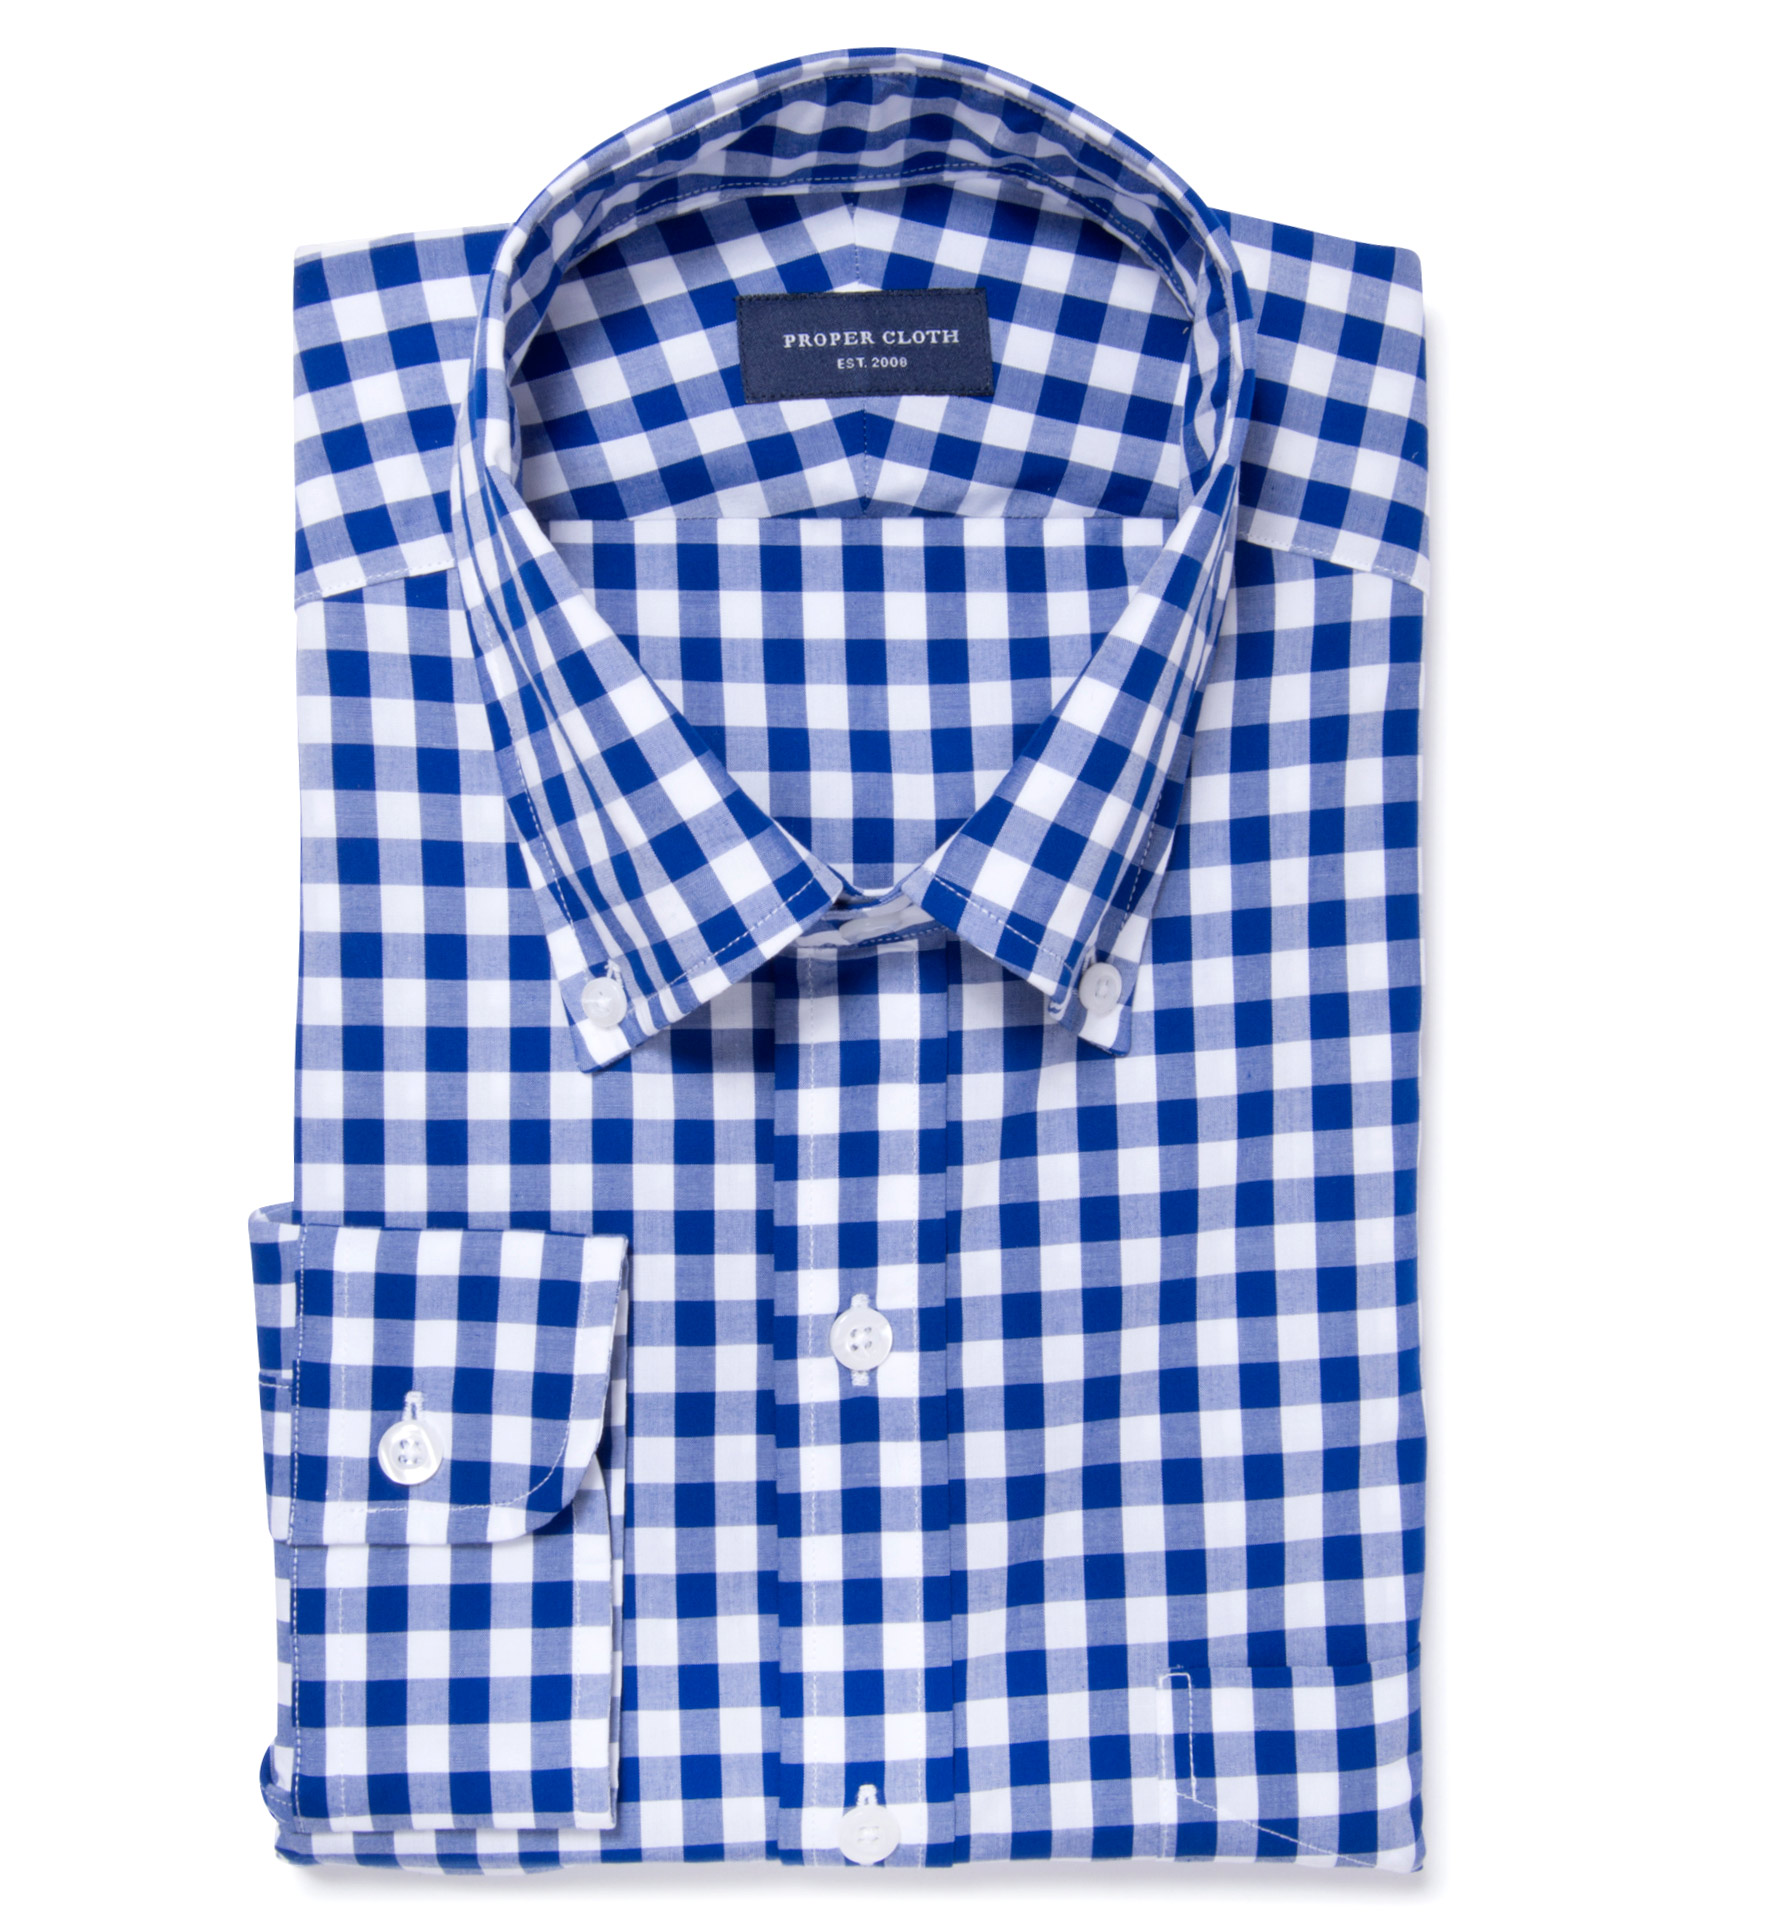 Royal Blue Large Gingham Men's Dress Shirt by Proper Cloth